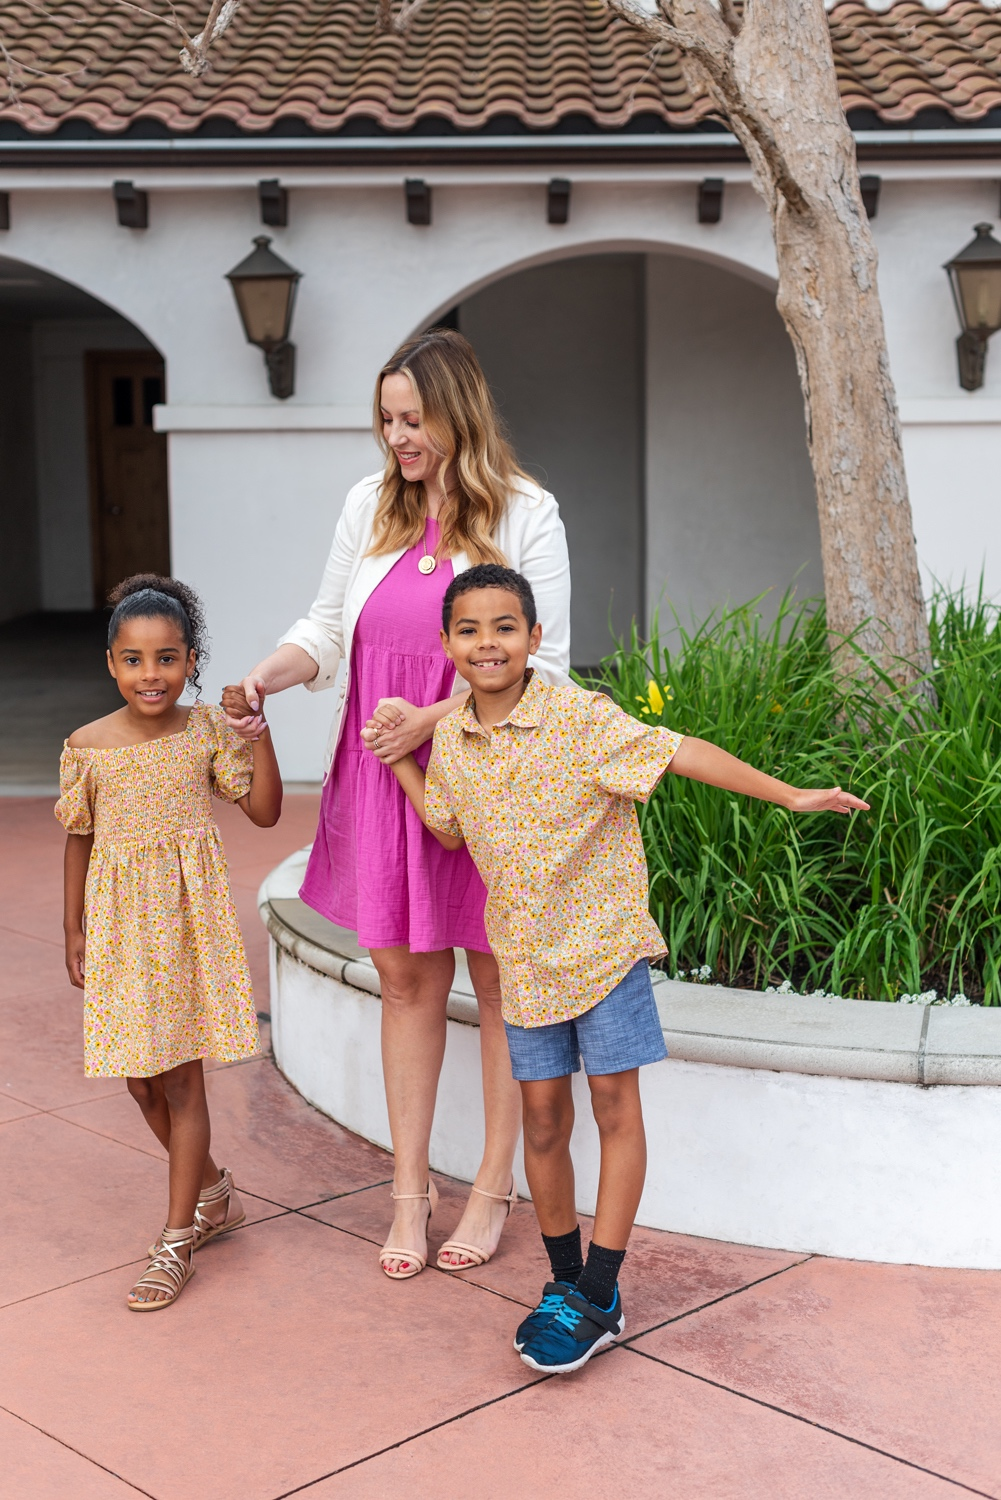 Mommy and Me Outfits by popular LA fashion blog, Posh in Progress: image of a mom and her two kids standing outside and wearing a white blazer, pink dress, nude heel sandals, floral print dress, floral print button up shirt, chambray shorts, gold strap sandals, and blue sneakers.